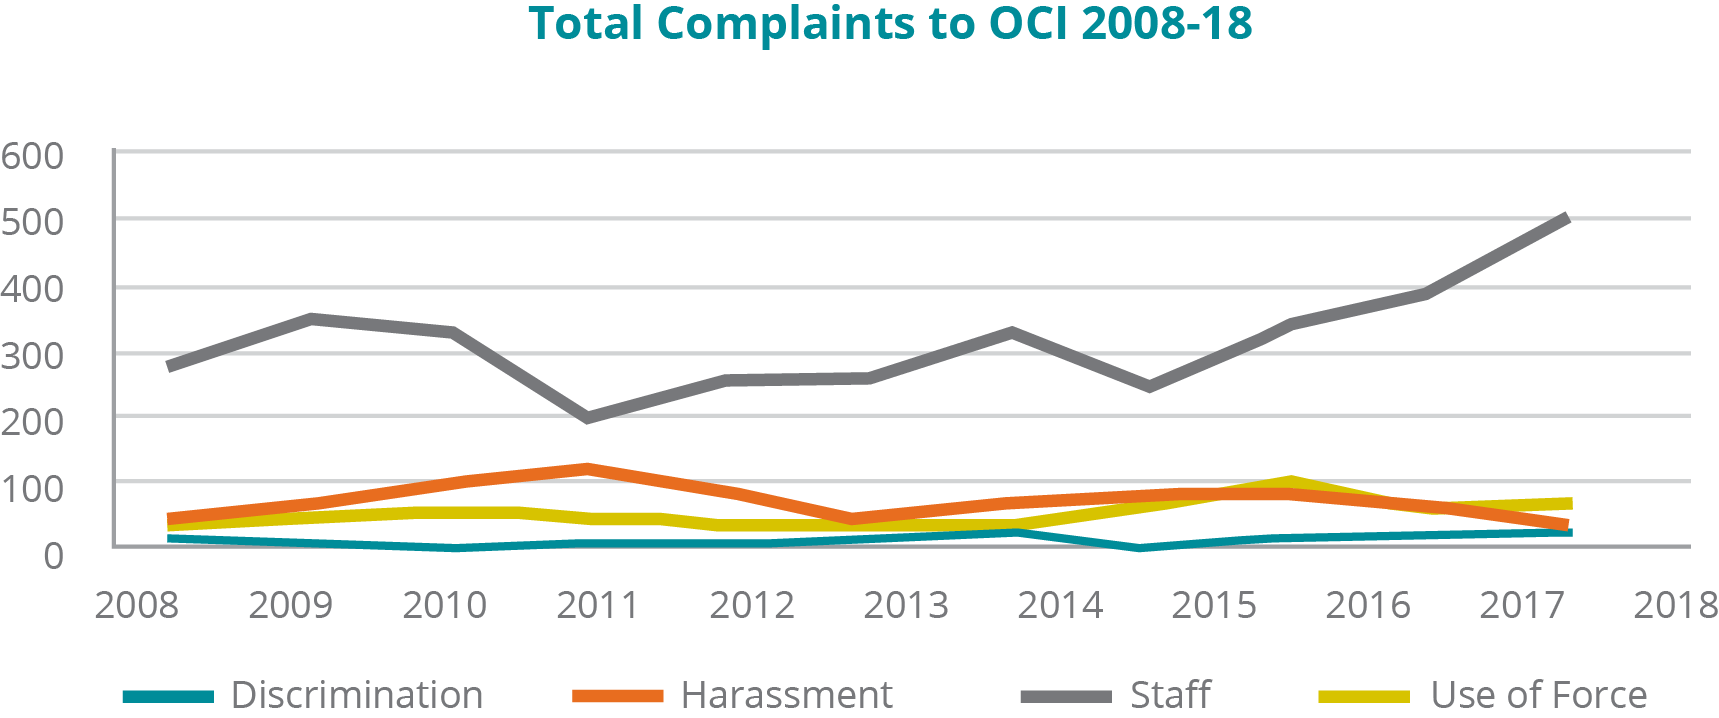 A graph depicting the number of total complaints of a specific type to the OCI from 2008 to 2018: - Complaints about Discrimination: In 2008, 12; 2009, 8; 2010, 9; 2011, 13; 2012, 13; 2013, 10; 2014, 18; 2015, 8; 2016, 17; 2017, 18; 2018, 26. - Complaints about Harassment: In 2008, 38; 2009, 69; 2010, 93; 2011, 115; 2012, 85; 2013, 40; 2014, 60; 2015, 80; 2016, 82; 2017, 65; 2018, 33. -	Complaints about Staff: In 2008, 275; 2009, 339; 2010, 322; 2011, 198; 2012, 251; 2013, 254; 2014, 315; 2015, 242; 2016, 329; 2017, 381; 2018, 495. - Complaints about Use of Force: In 2008, 35; 2009, 45; 2010, 51; 2011, 50; 2012, 35; 2013, 40; 2014, 43; 2015, 63; 2016, 97; 2017, 61; 2018, 64.